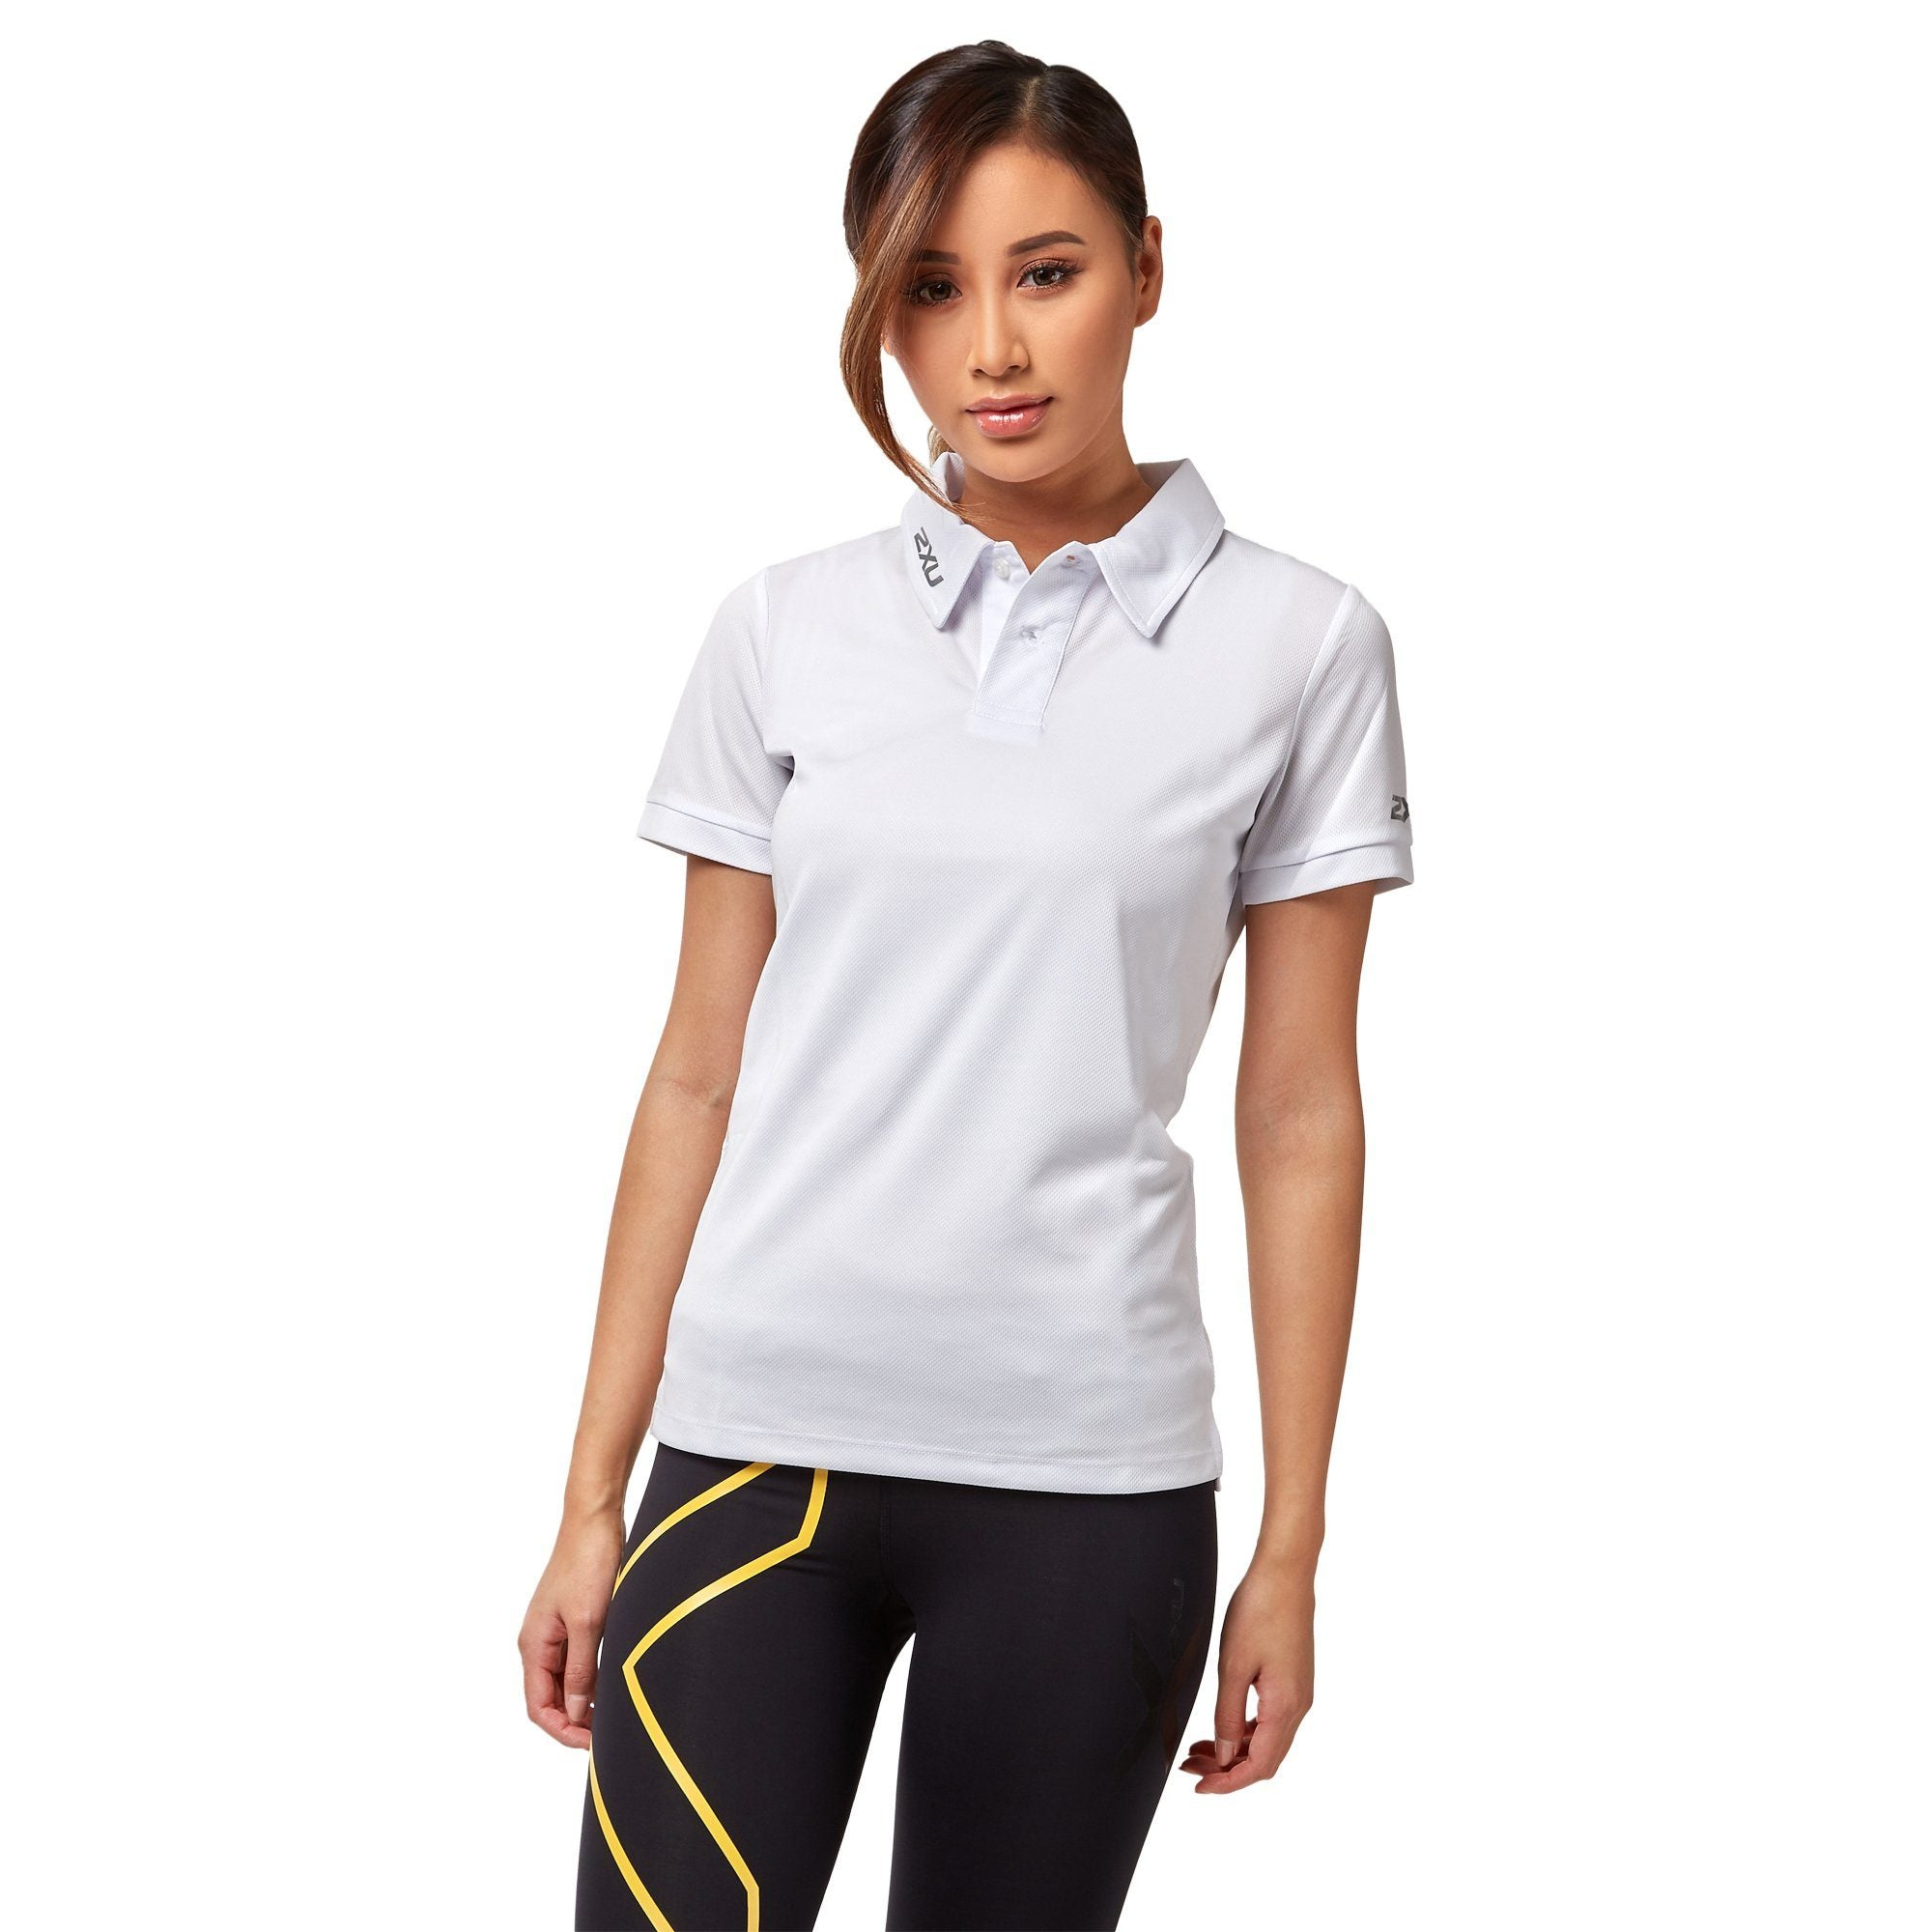 2XU Women's Performance Polo - White Apparel 2XU  (2019203219515)